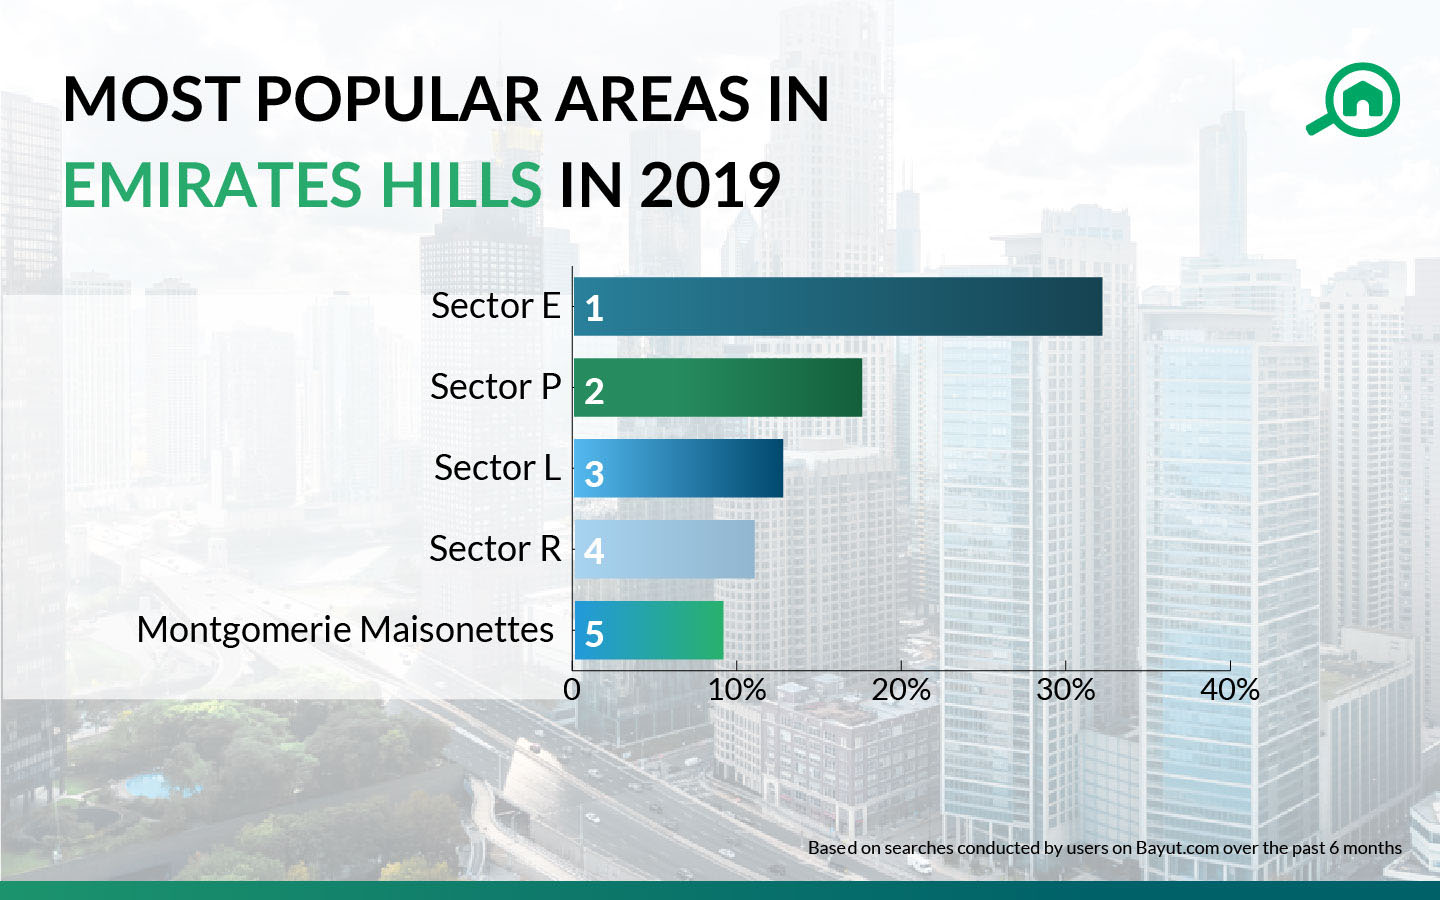 popular areas in emirates hills in 2019